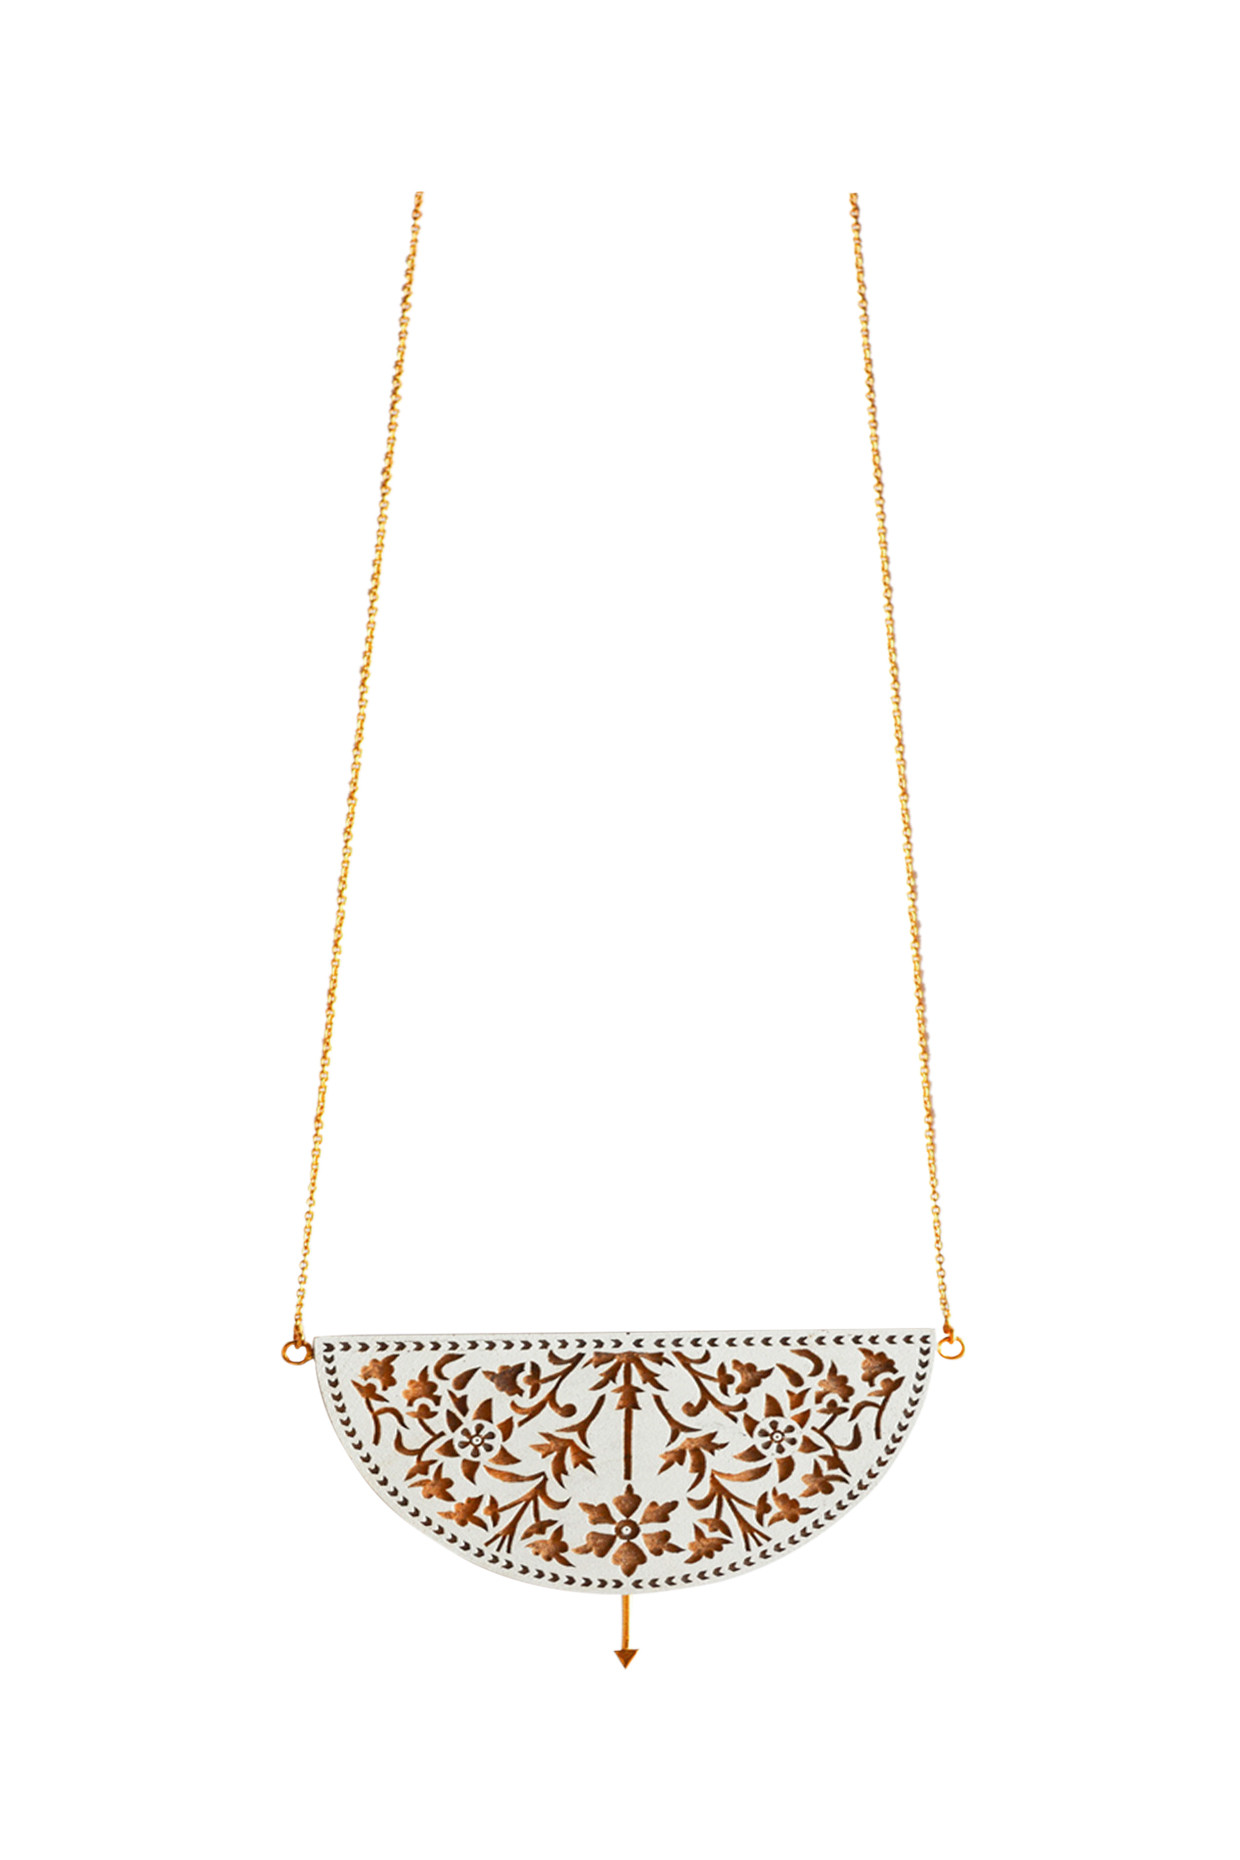 Handcrafted Gold Necklace With Floral Motives by Satat